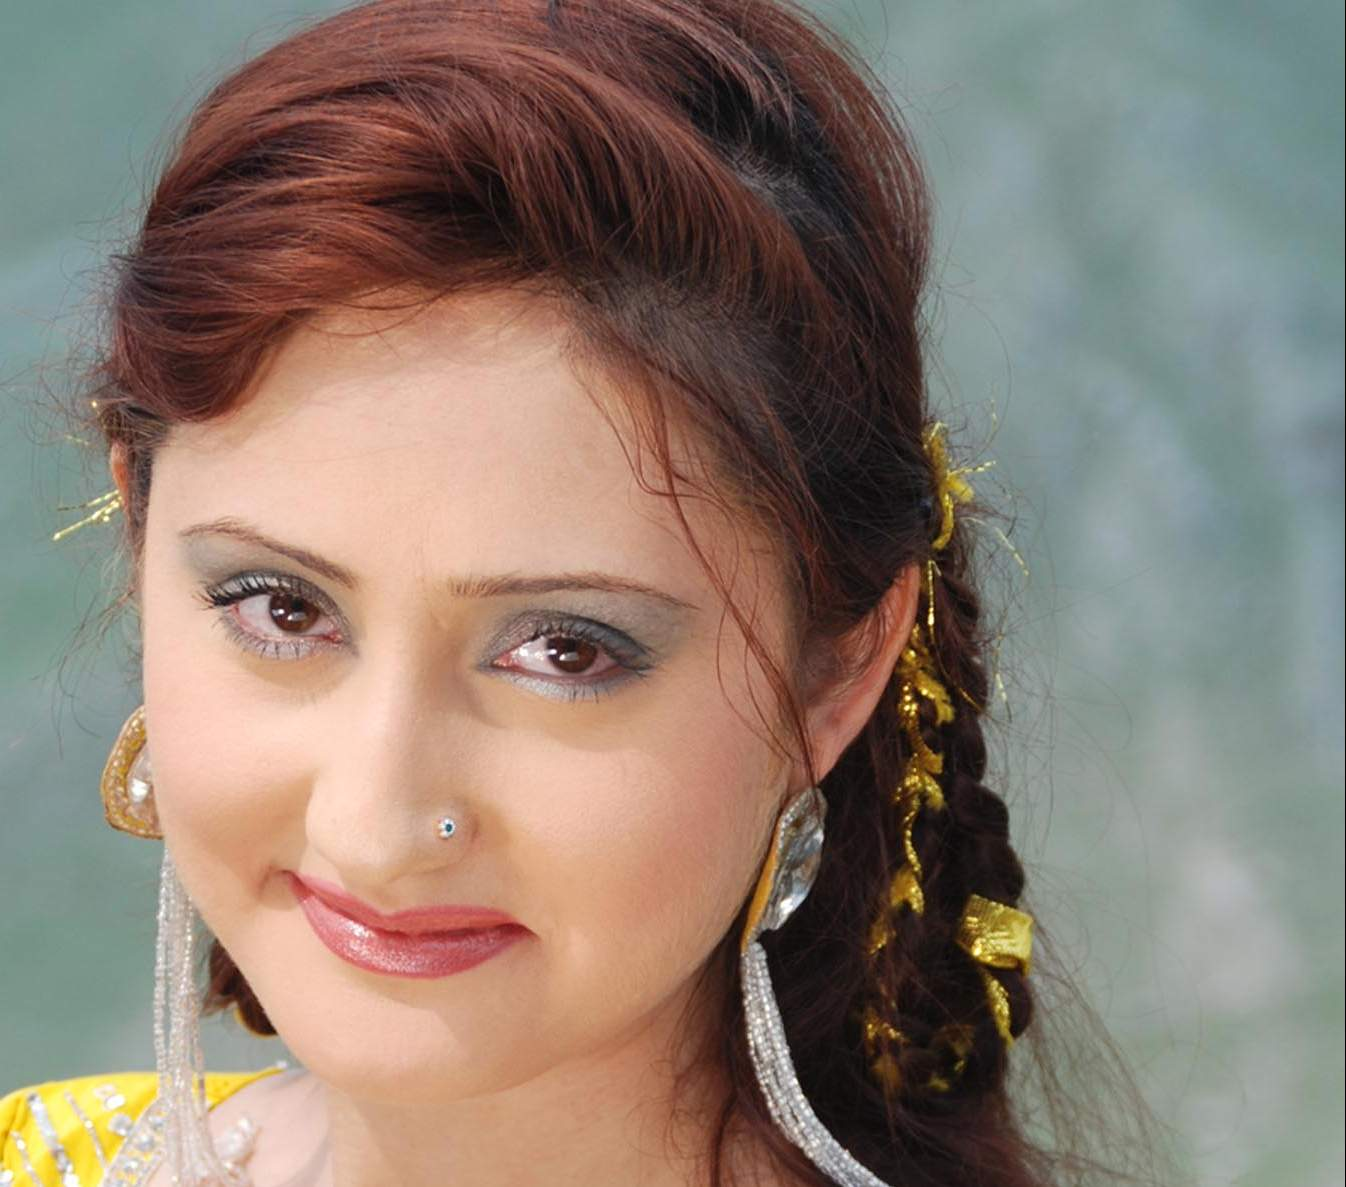 Sumbal Khan Pashto actress beauty